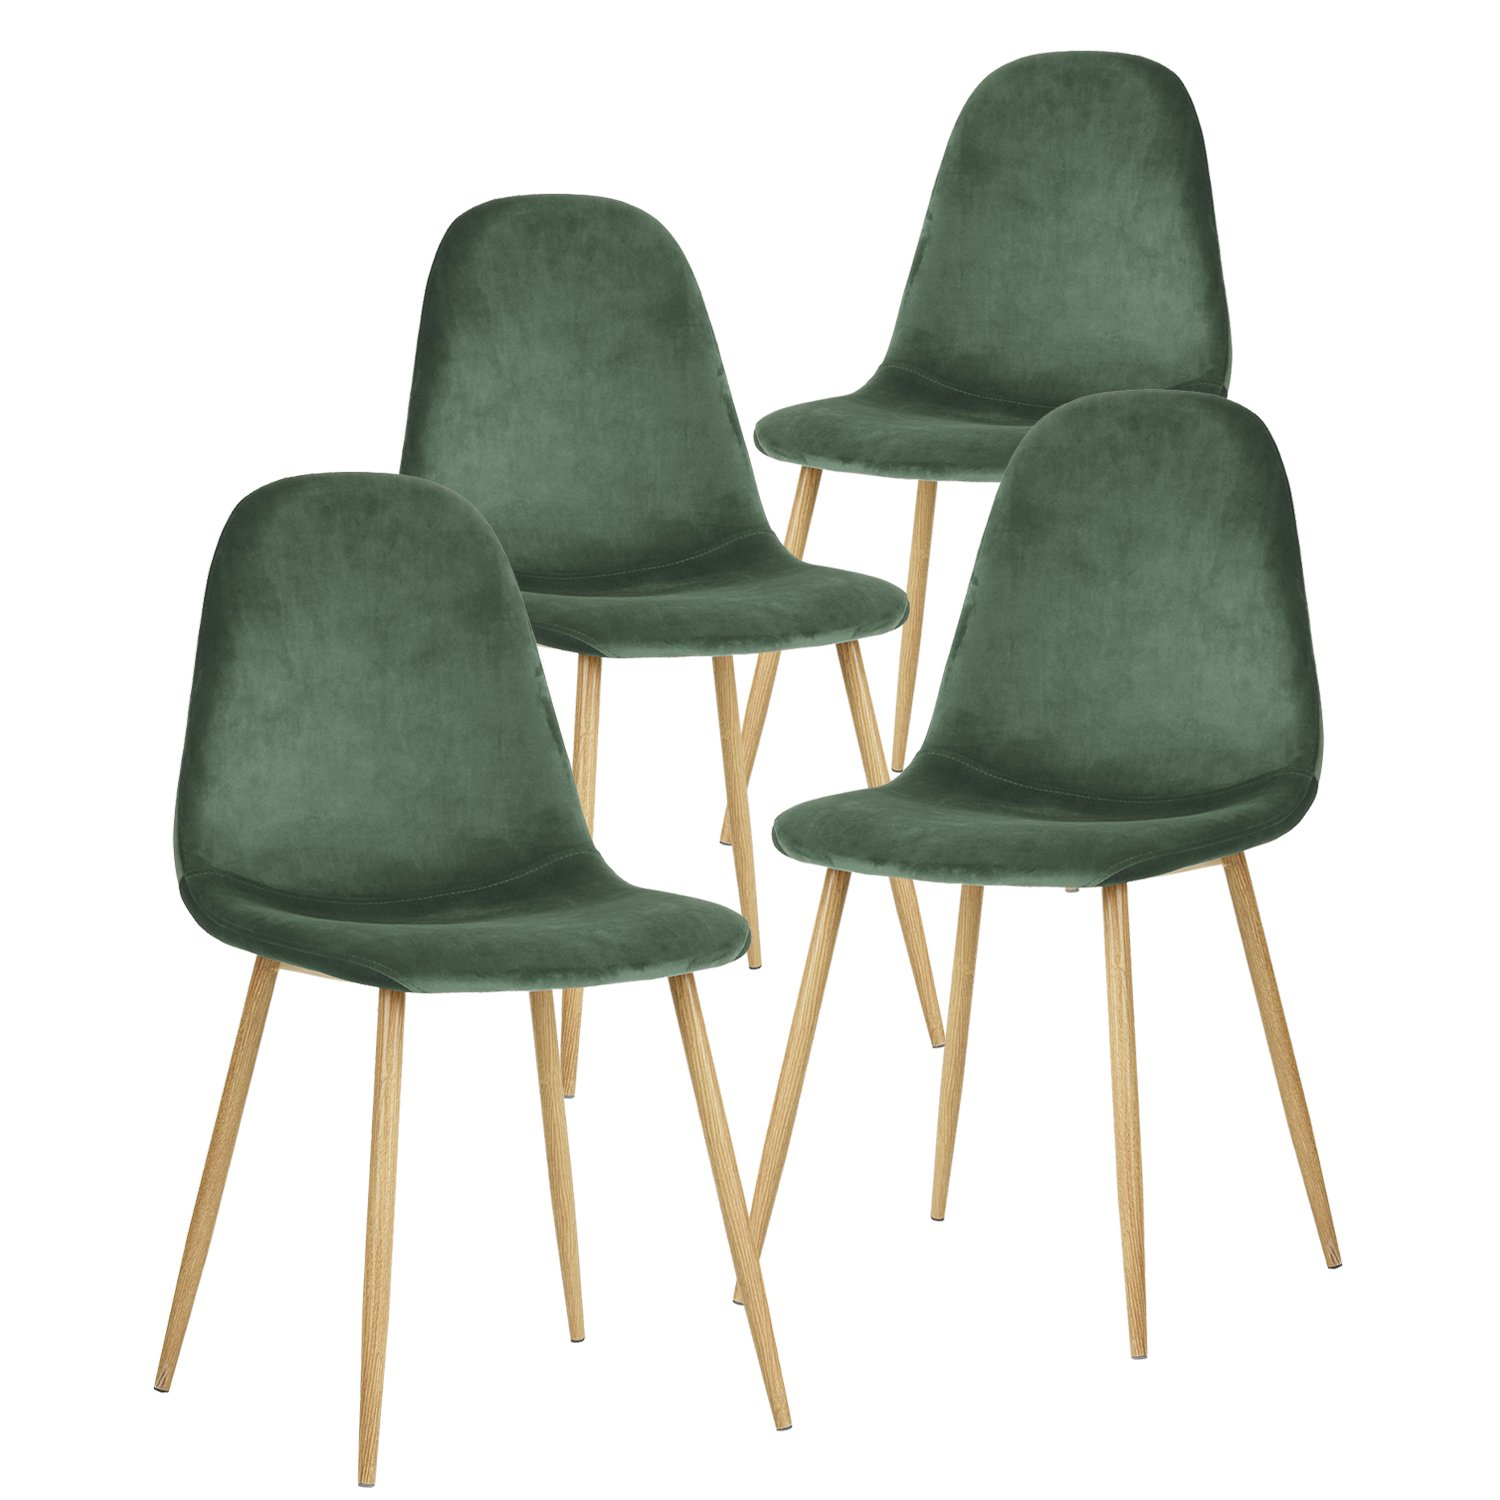 GreenForest Dining Chairs for Kitchen,Elegant Velvet Back and Cushion, Mid Century Modern Side Chairs Set of 4,Cactus